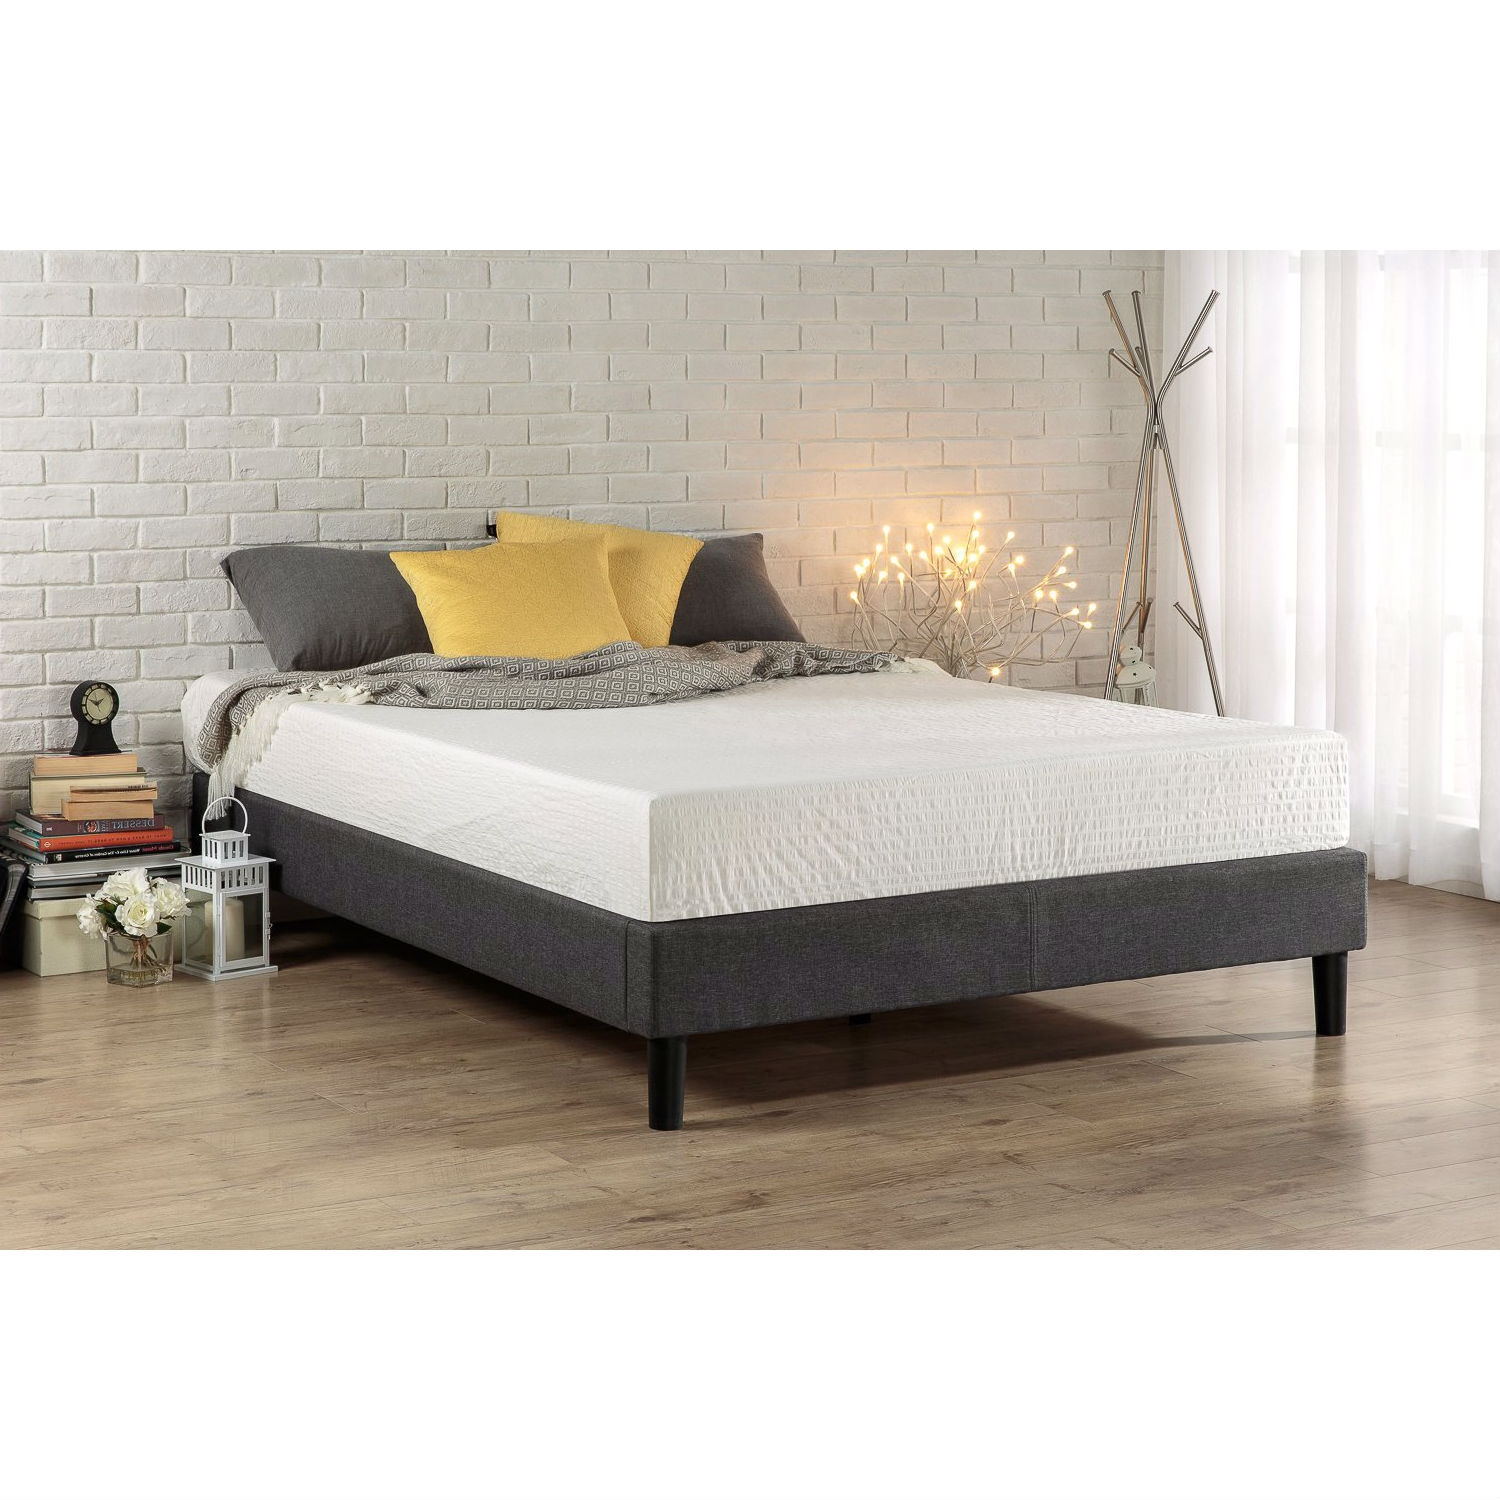 King Size Grey Upholstered Platform Bed Frame With Mid Century Style Legs Fastfurnishings